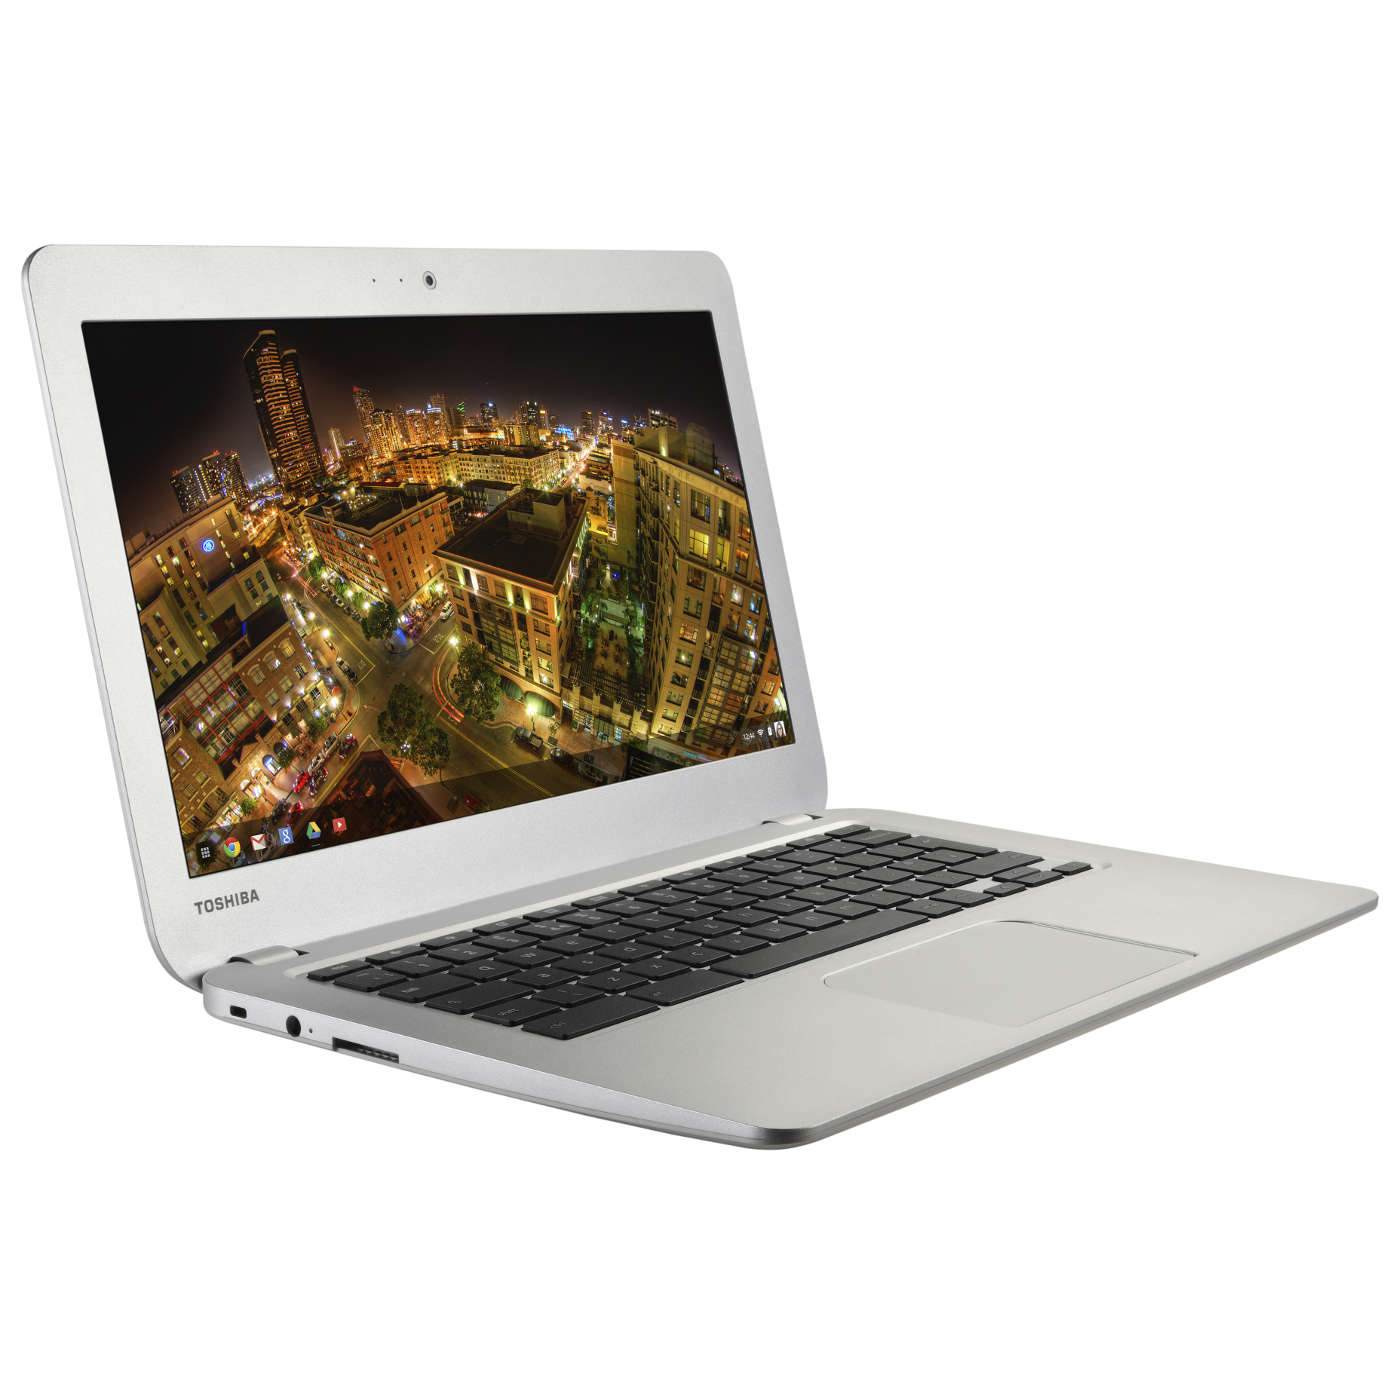 "PC portable Toshiba Chromebook CB30-B-104 Intel Celeron N2840 4 Go eMMC 16 Go 13.3"" LED Wi-Fi AC/Bluetooth Webcam Google Chrome OS"